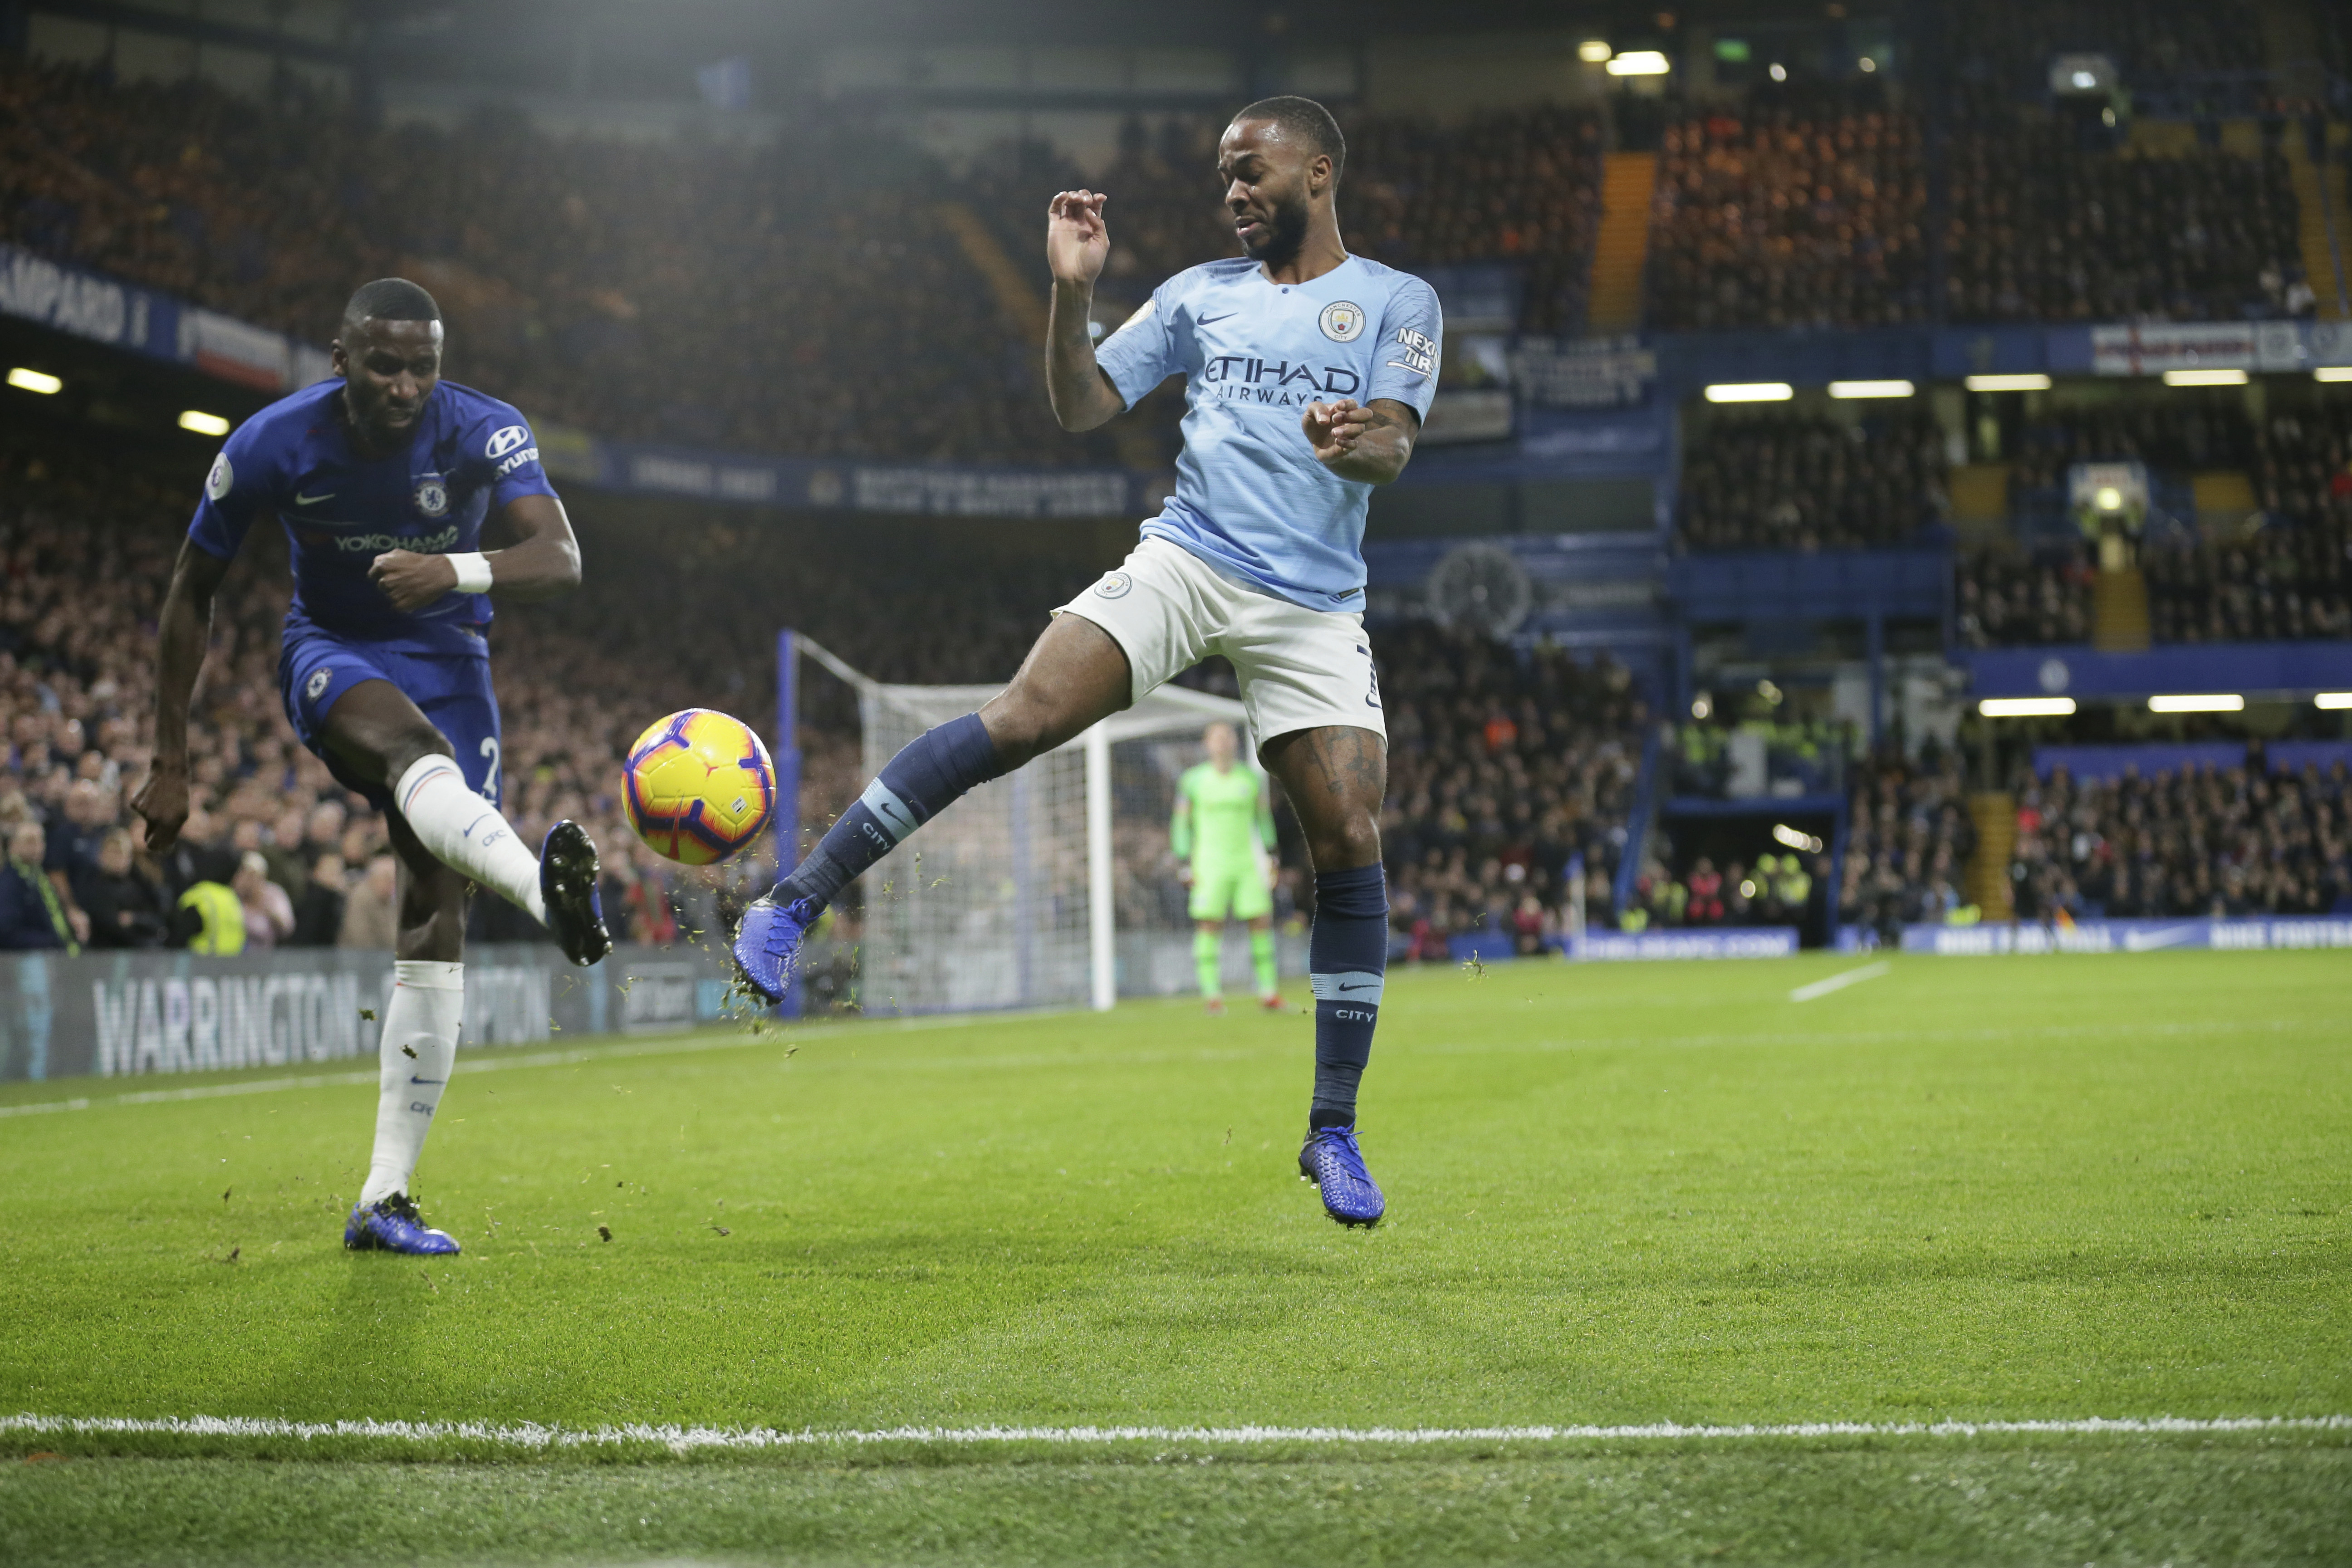 Chelsea 2, Man City 0: Blues hand champions first loss